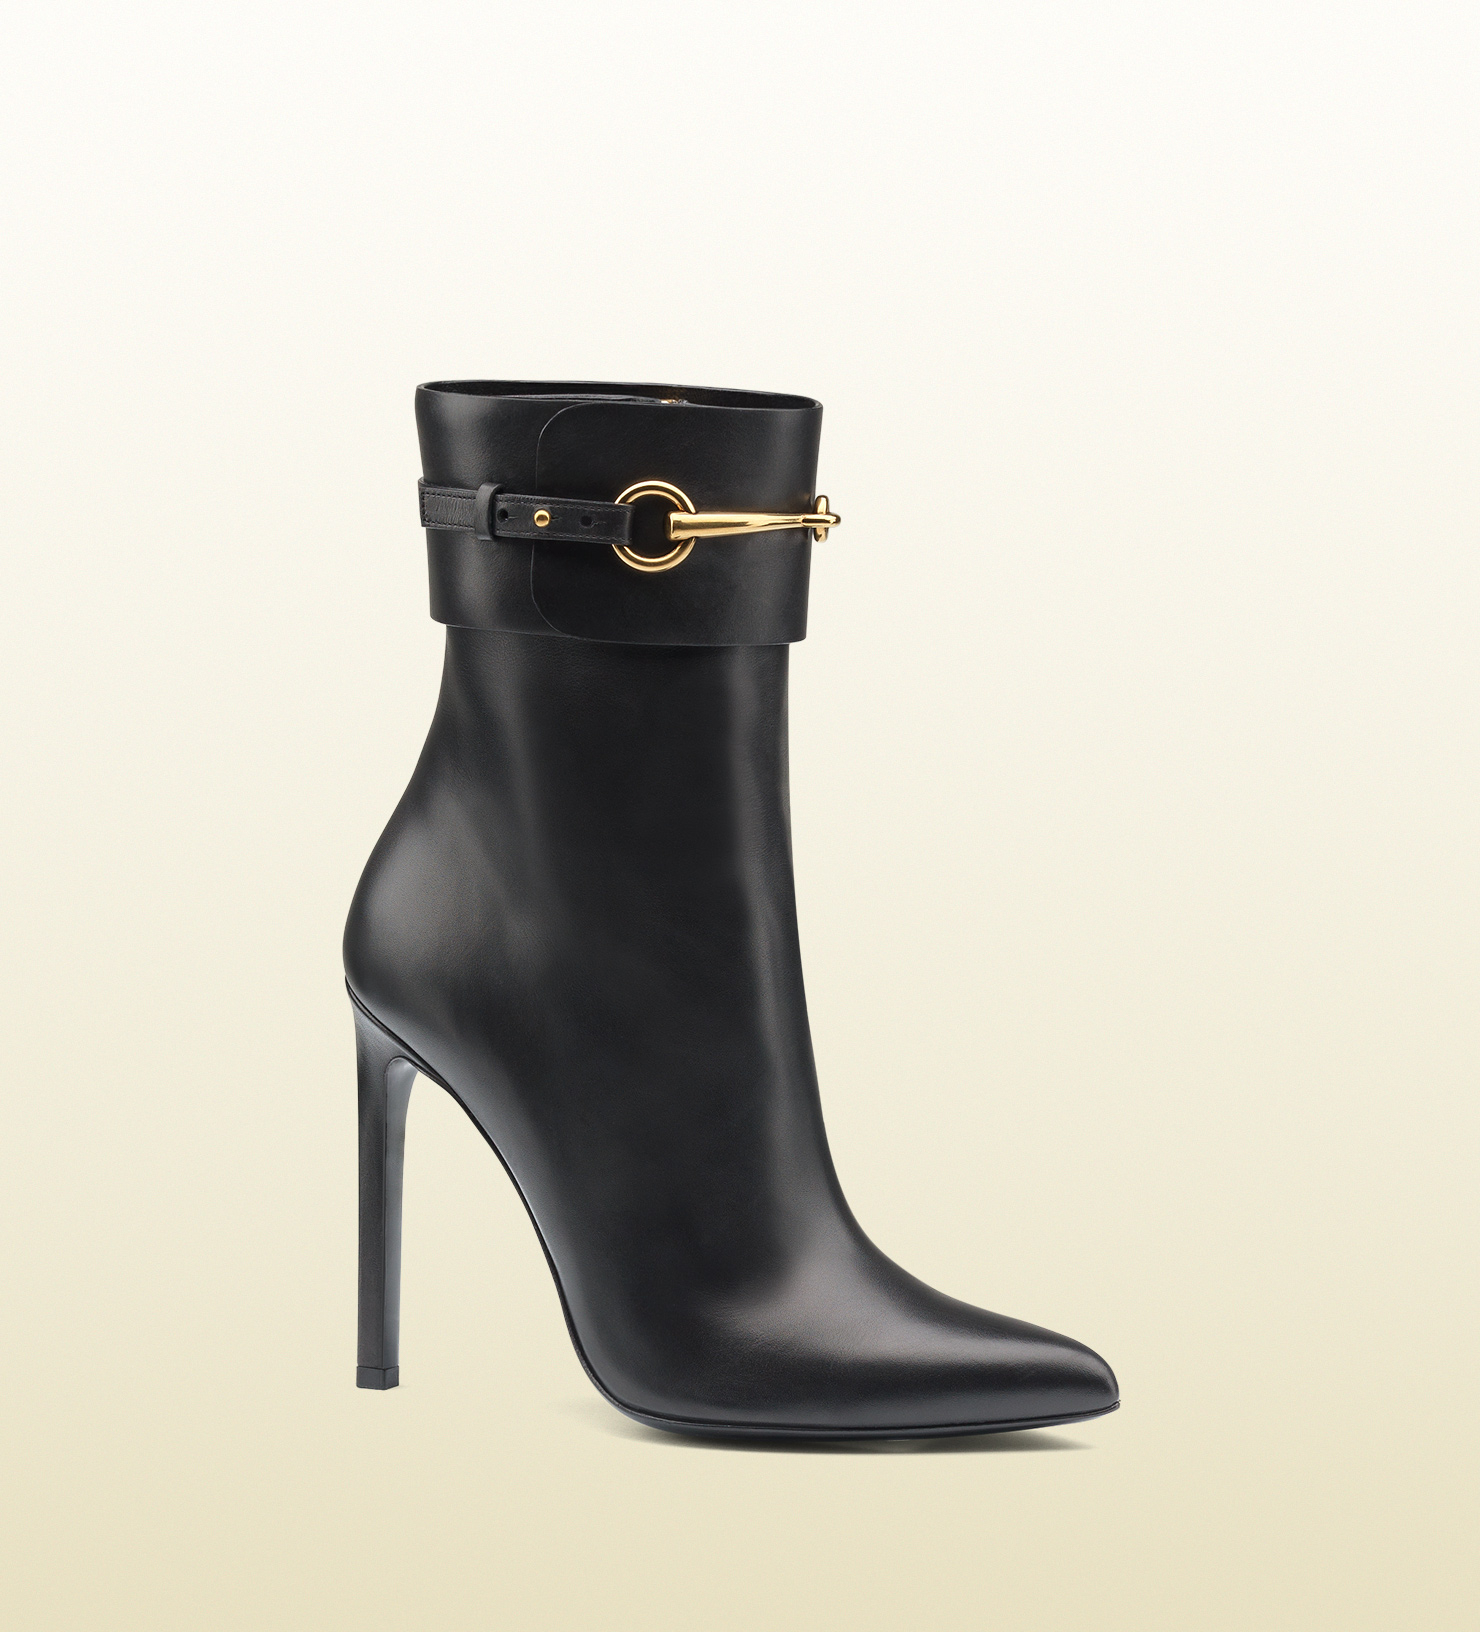 0ddf6bc46e43 Lyst - Gucci Leather Horsebit Ankle Boot in Black